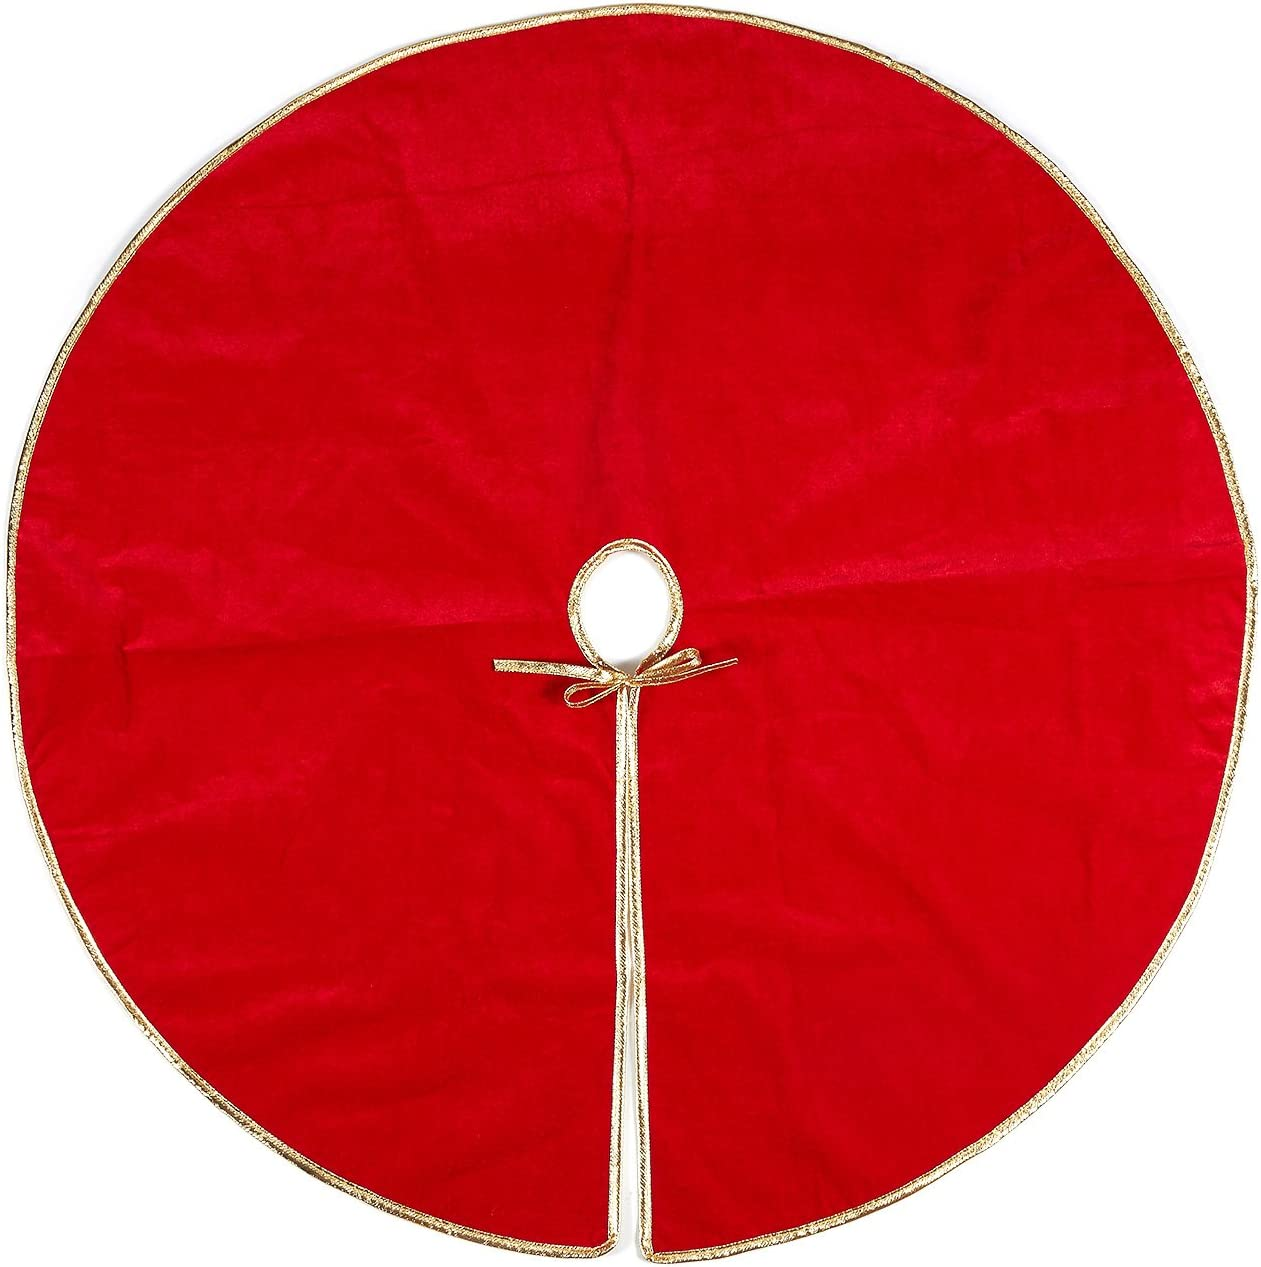 Juvale Red Christmas Tree Skirt, Round Fabric Tree Skirt, Holiday Decor (42 in)